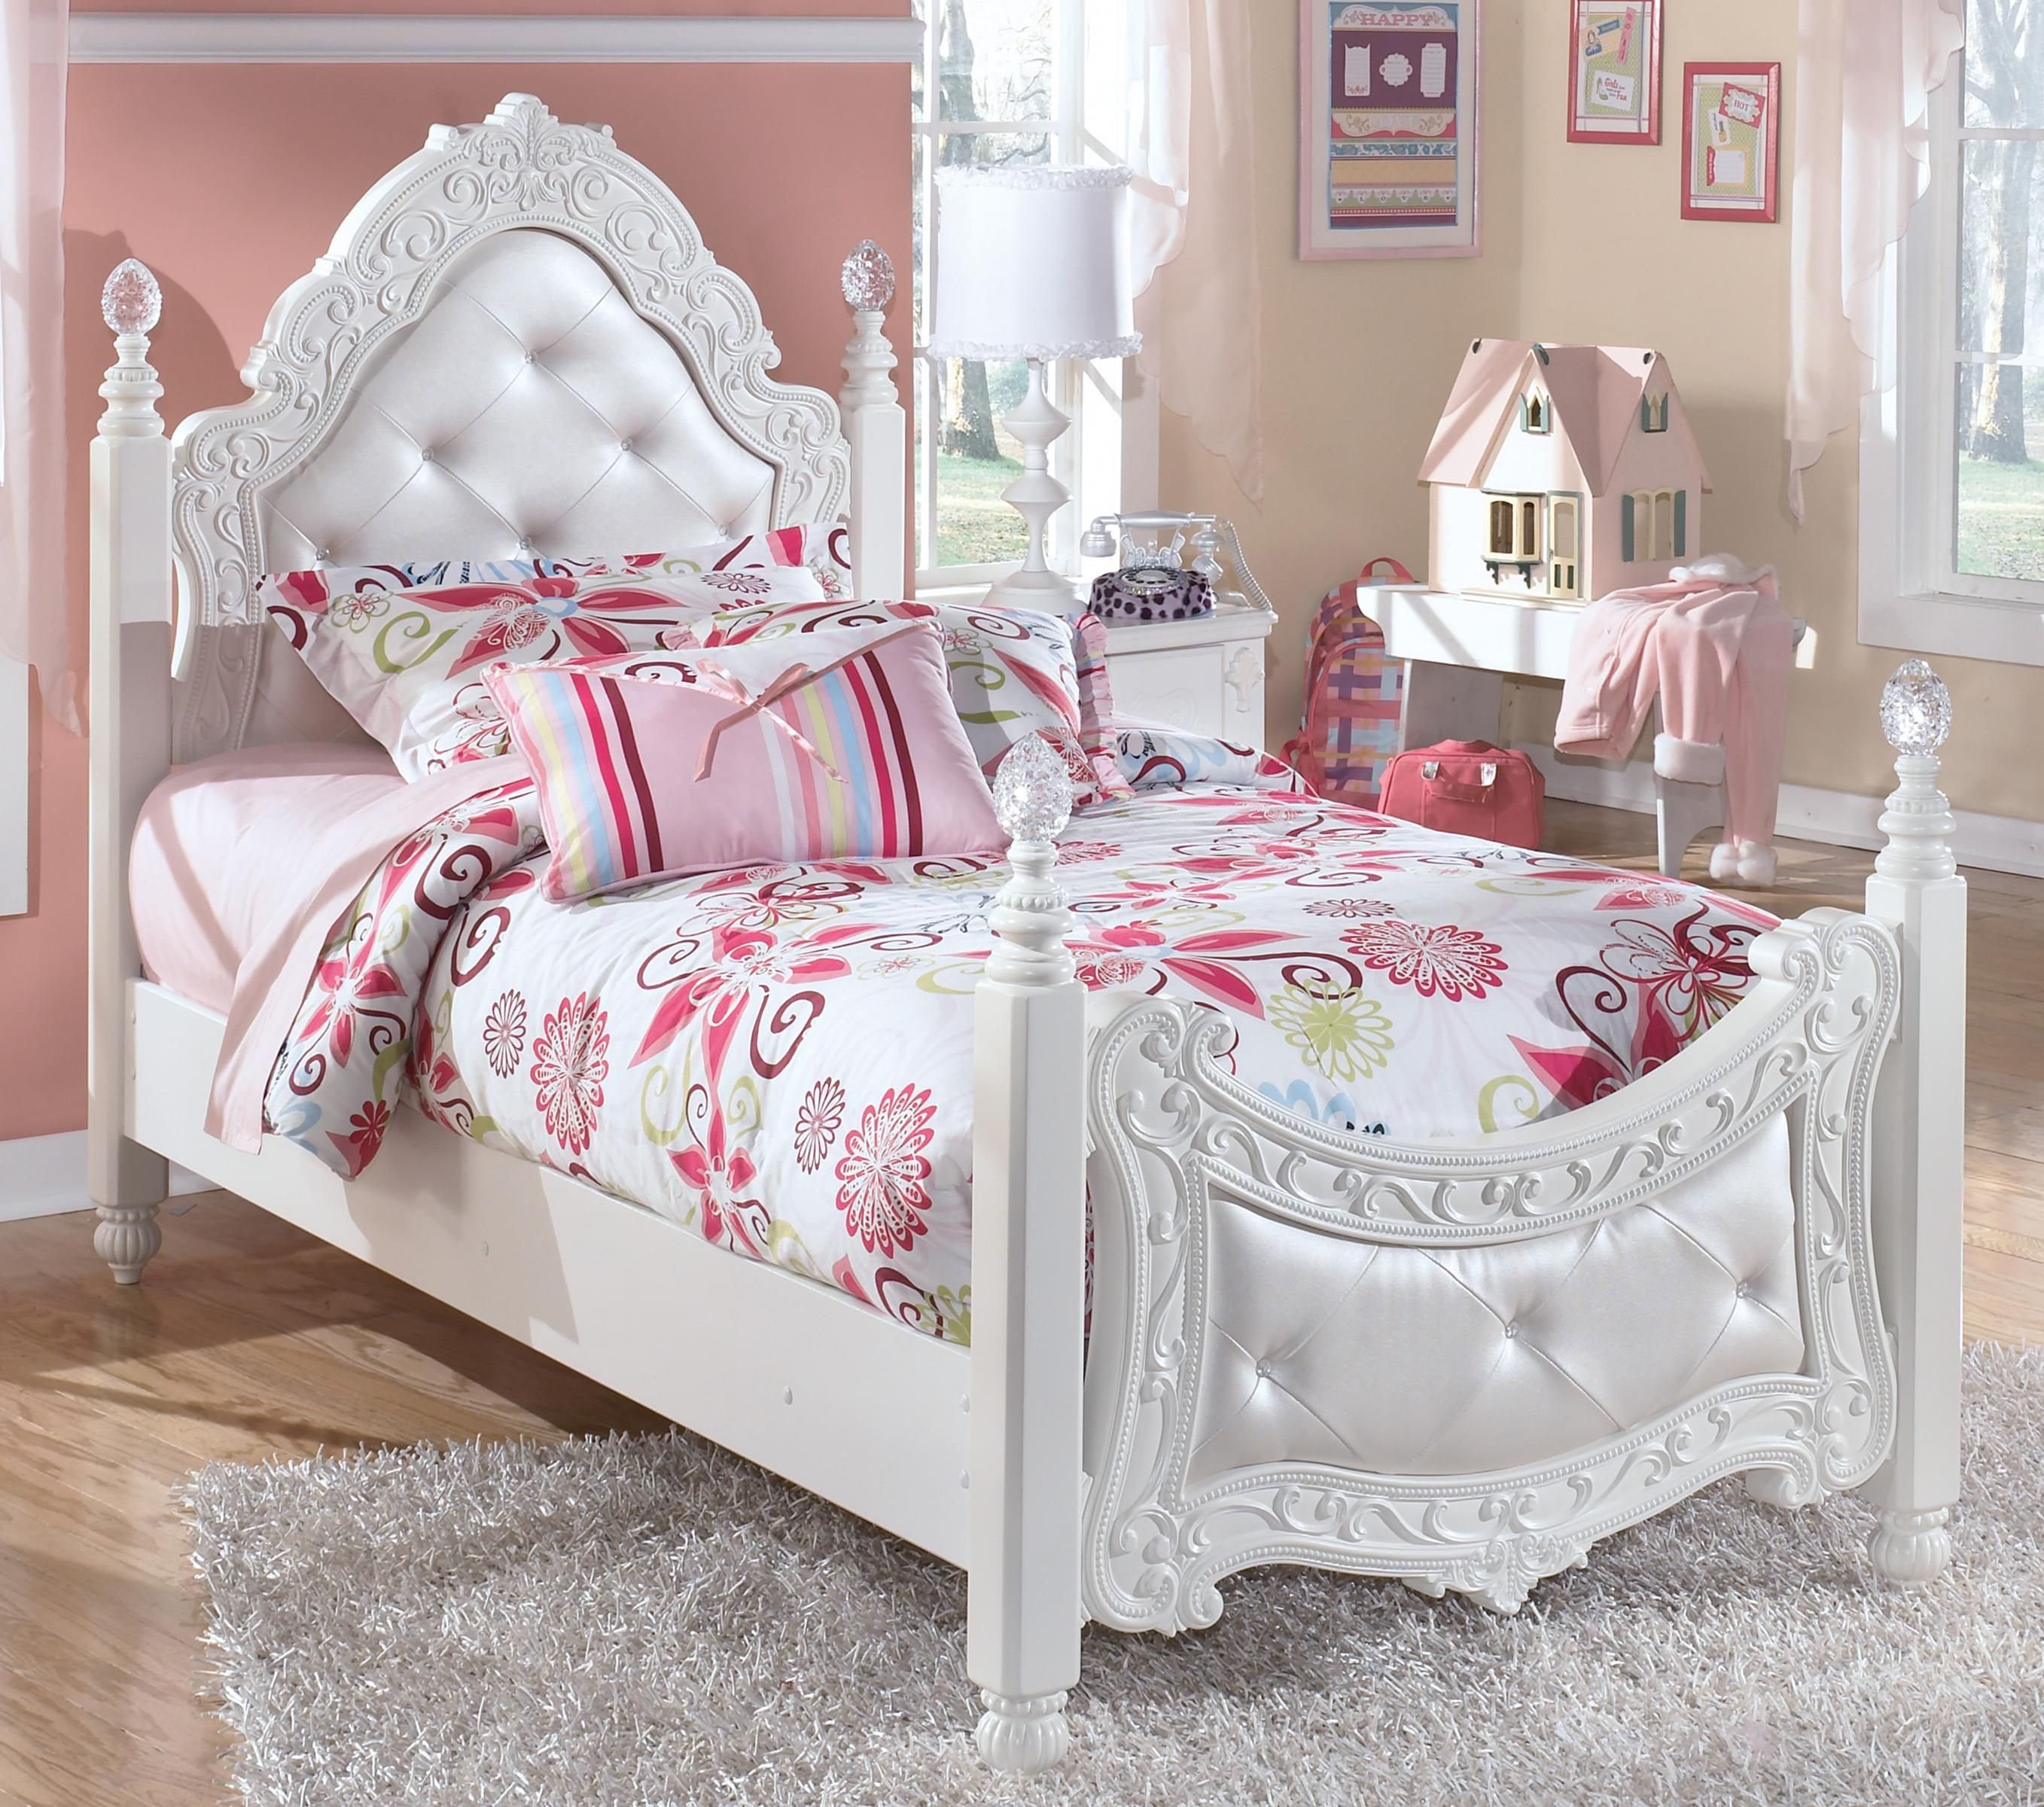 Exquisite Twin Ornate Poster Bed with Tufted Headboard ...